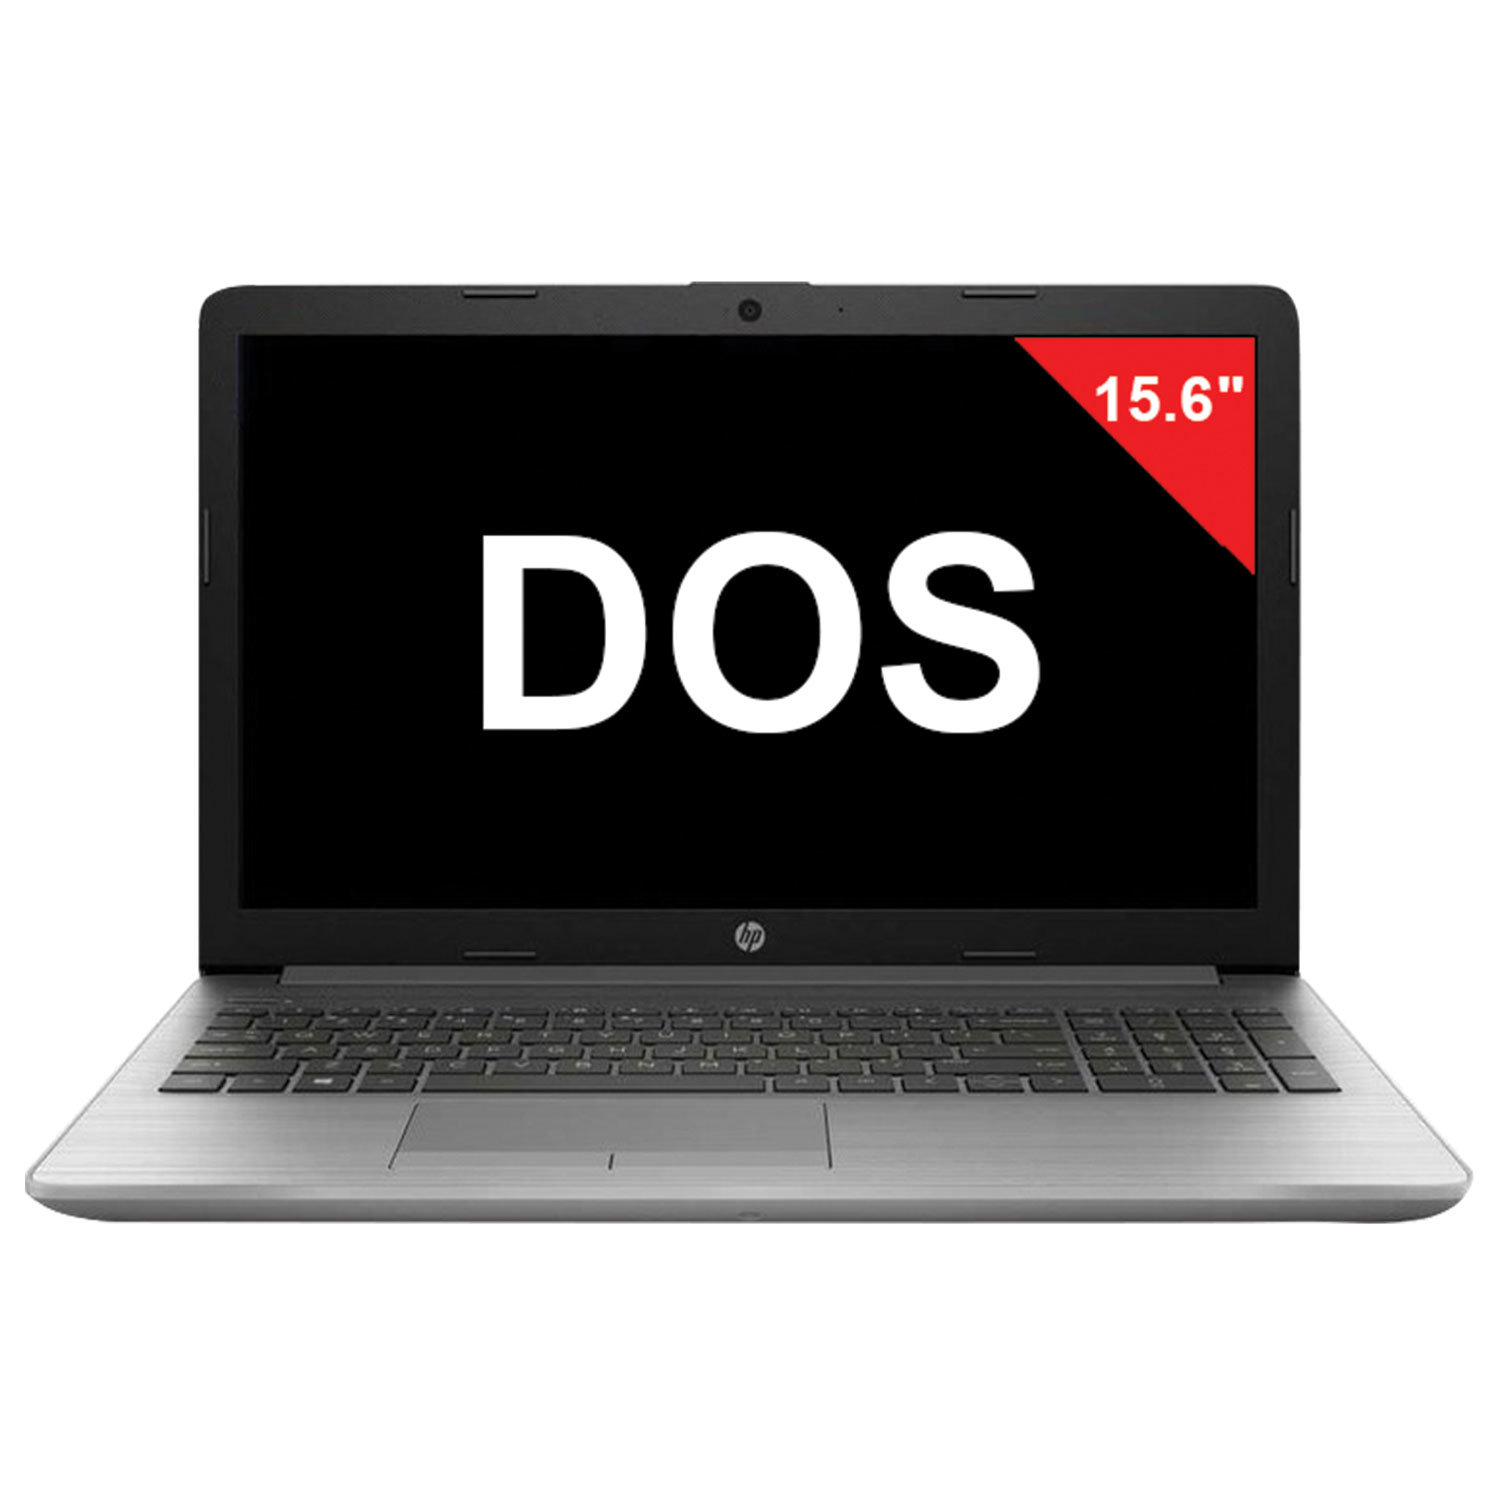 "Ноутбук HP 250 G7 15.6"" INTEL Core i3-7020U 2.3 ГГц, 8 ГБ, SSD 256 ГБ, DVD, INTEL HD, DOS, серебристый"